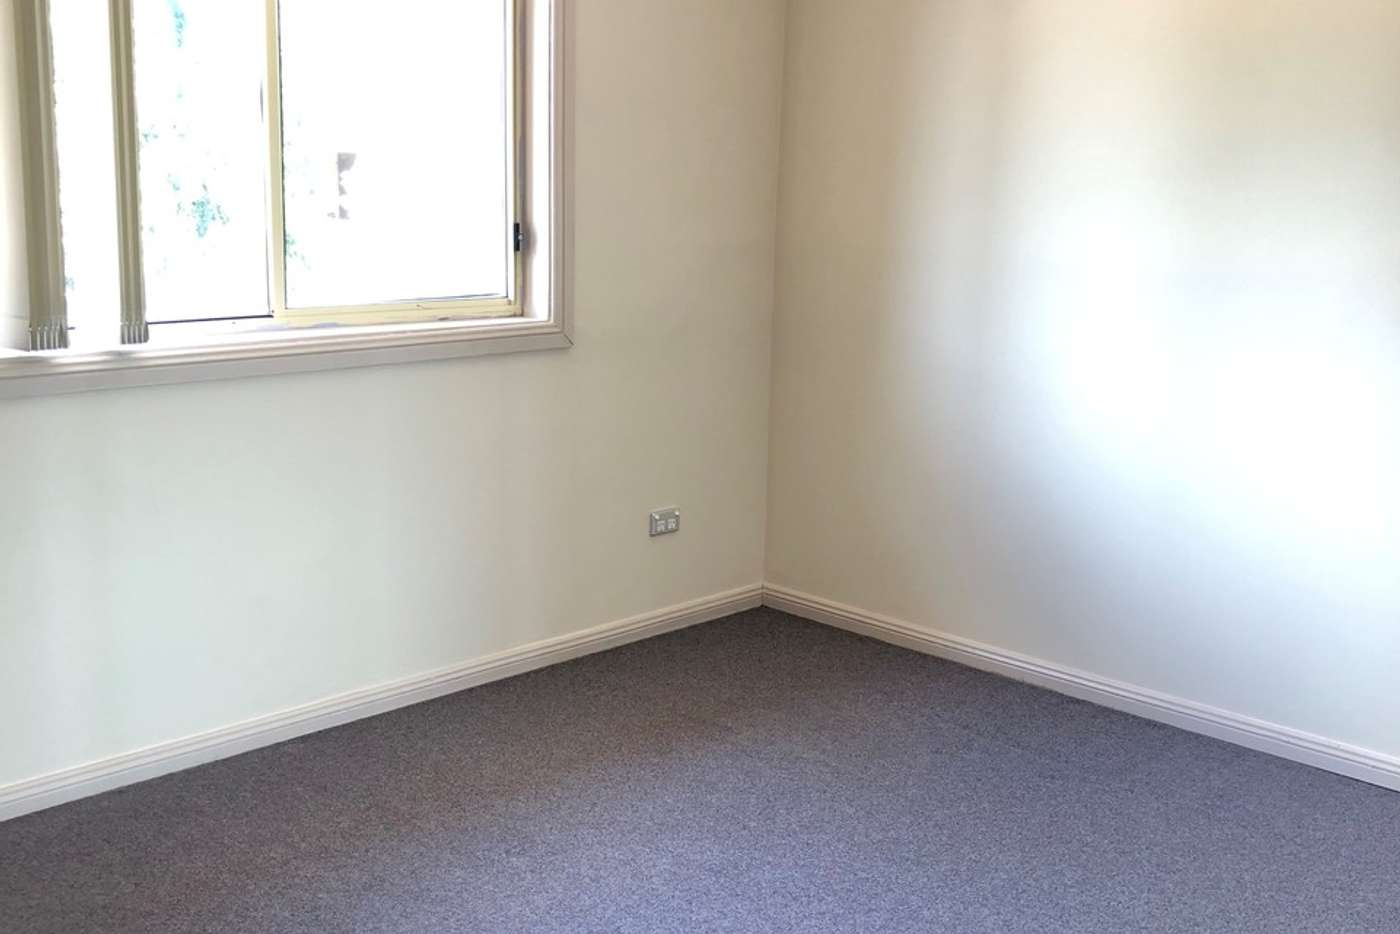 Sixth view of Homely townhouse listing, 6/41-43 Metella Road, Toongabbie NSW 2146